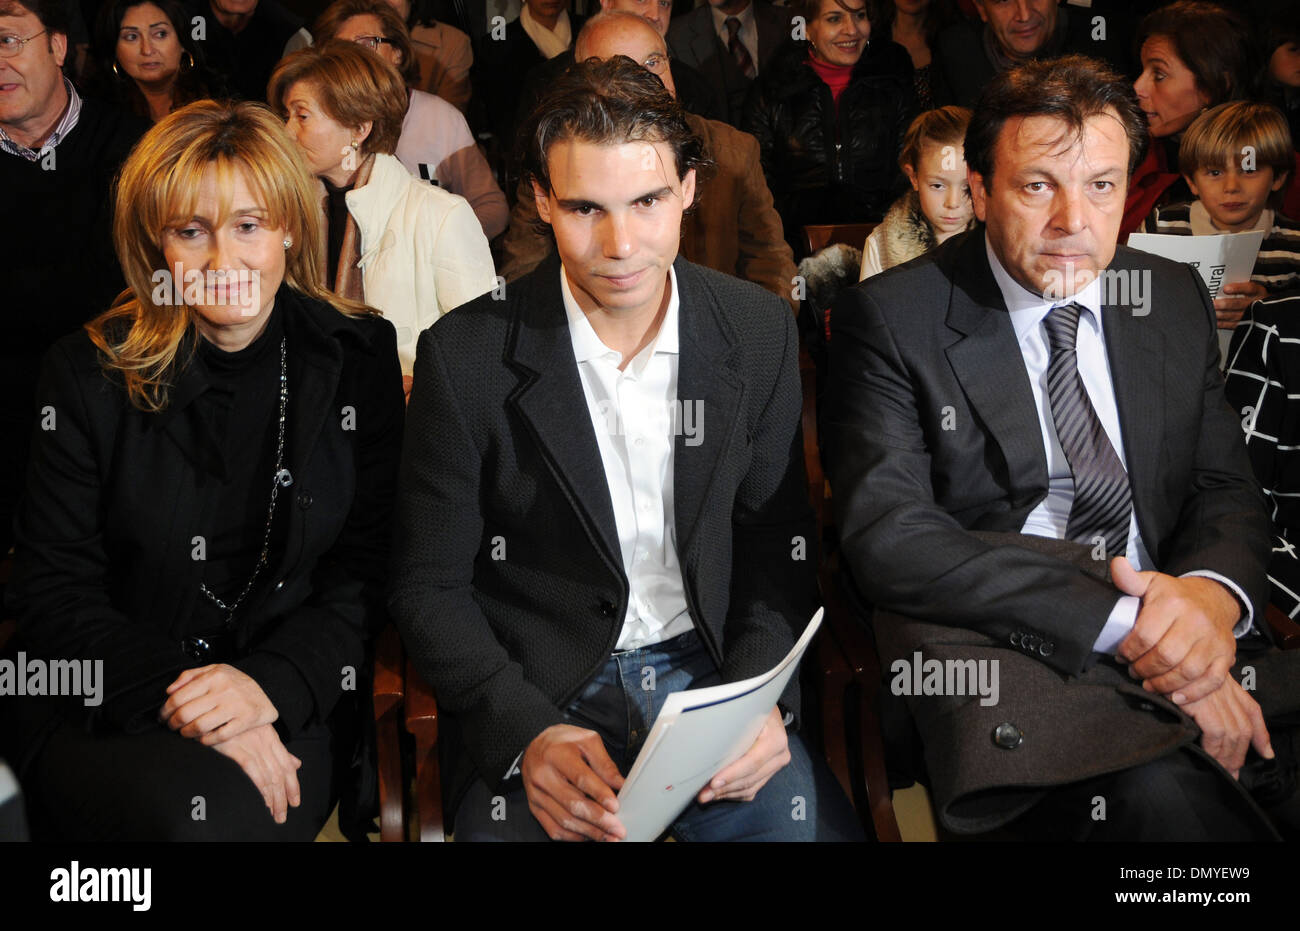 Father Rafael Nadal Parera Manacor High Resolution Stock Photography And Images Alamy